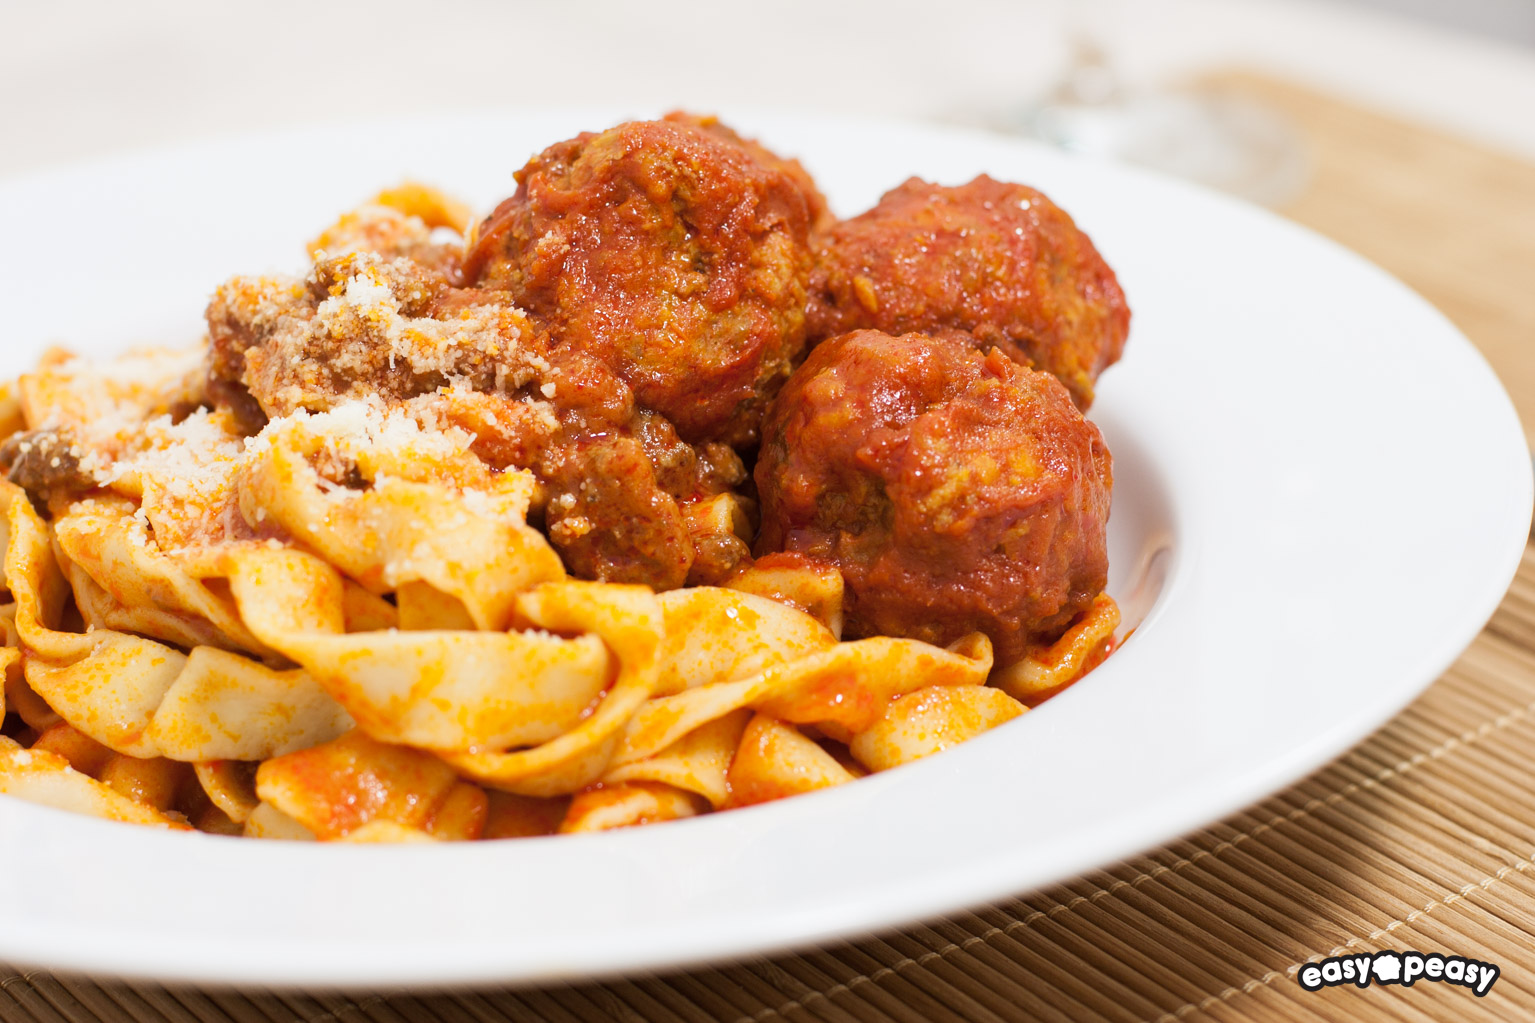 Tagliatelle and meatballs